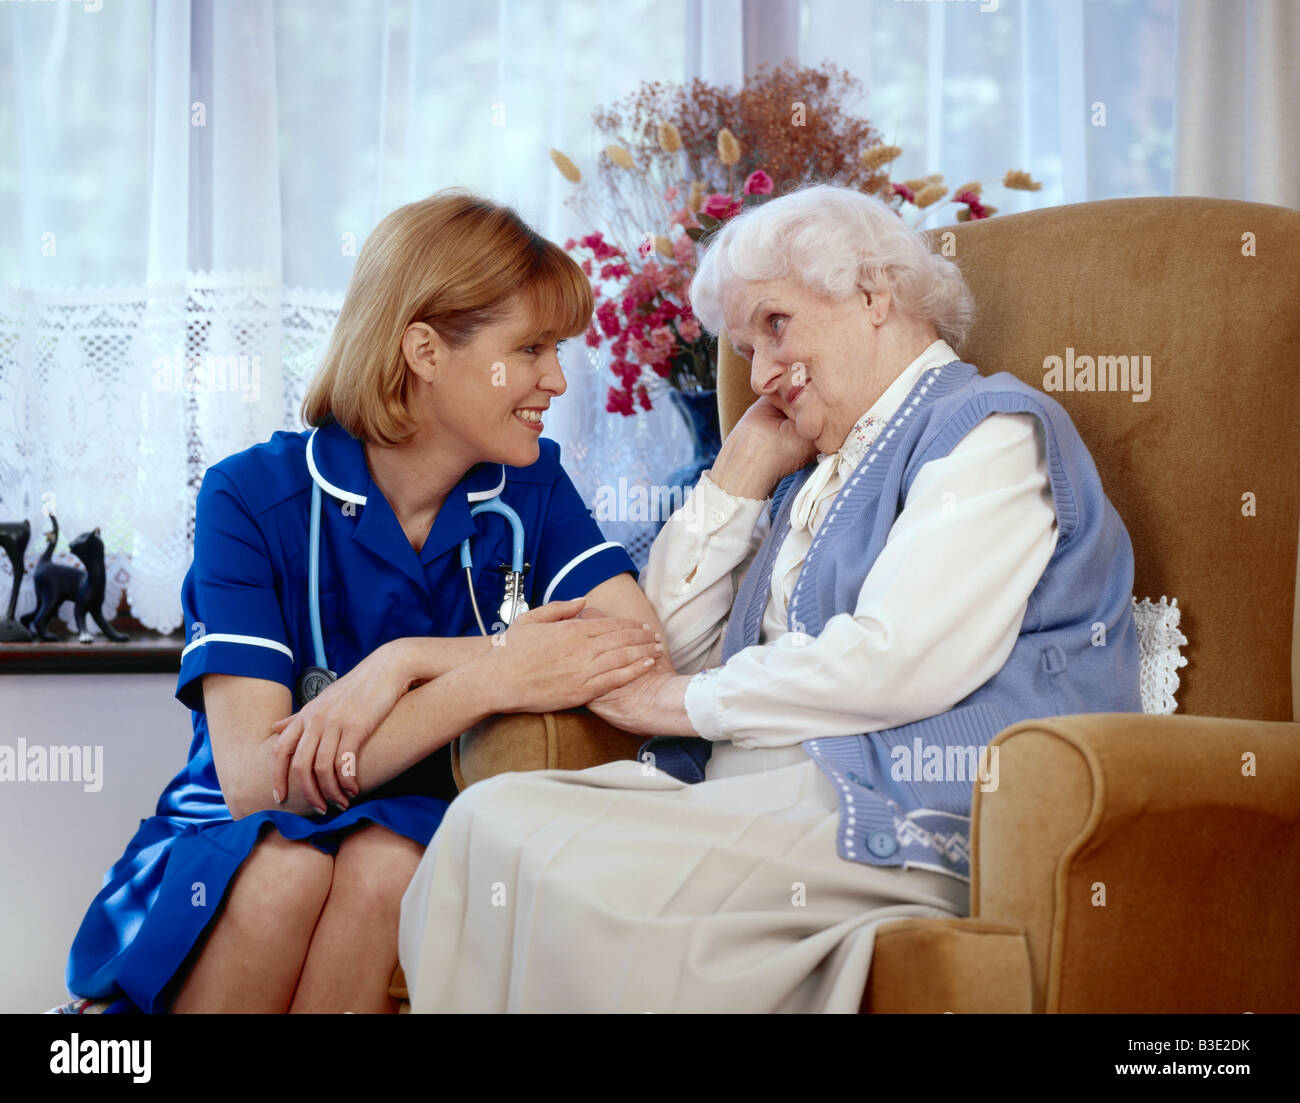 Nurse with elderly lady at home - Stock Image